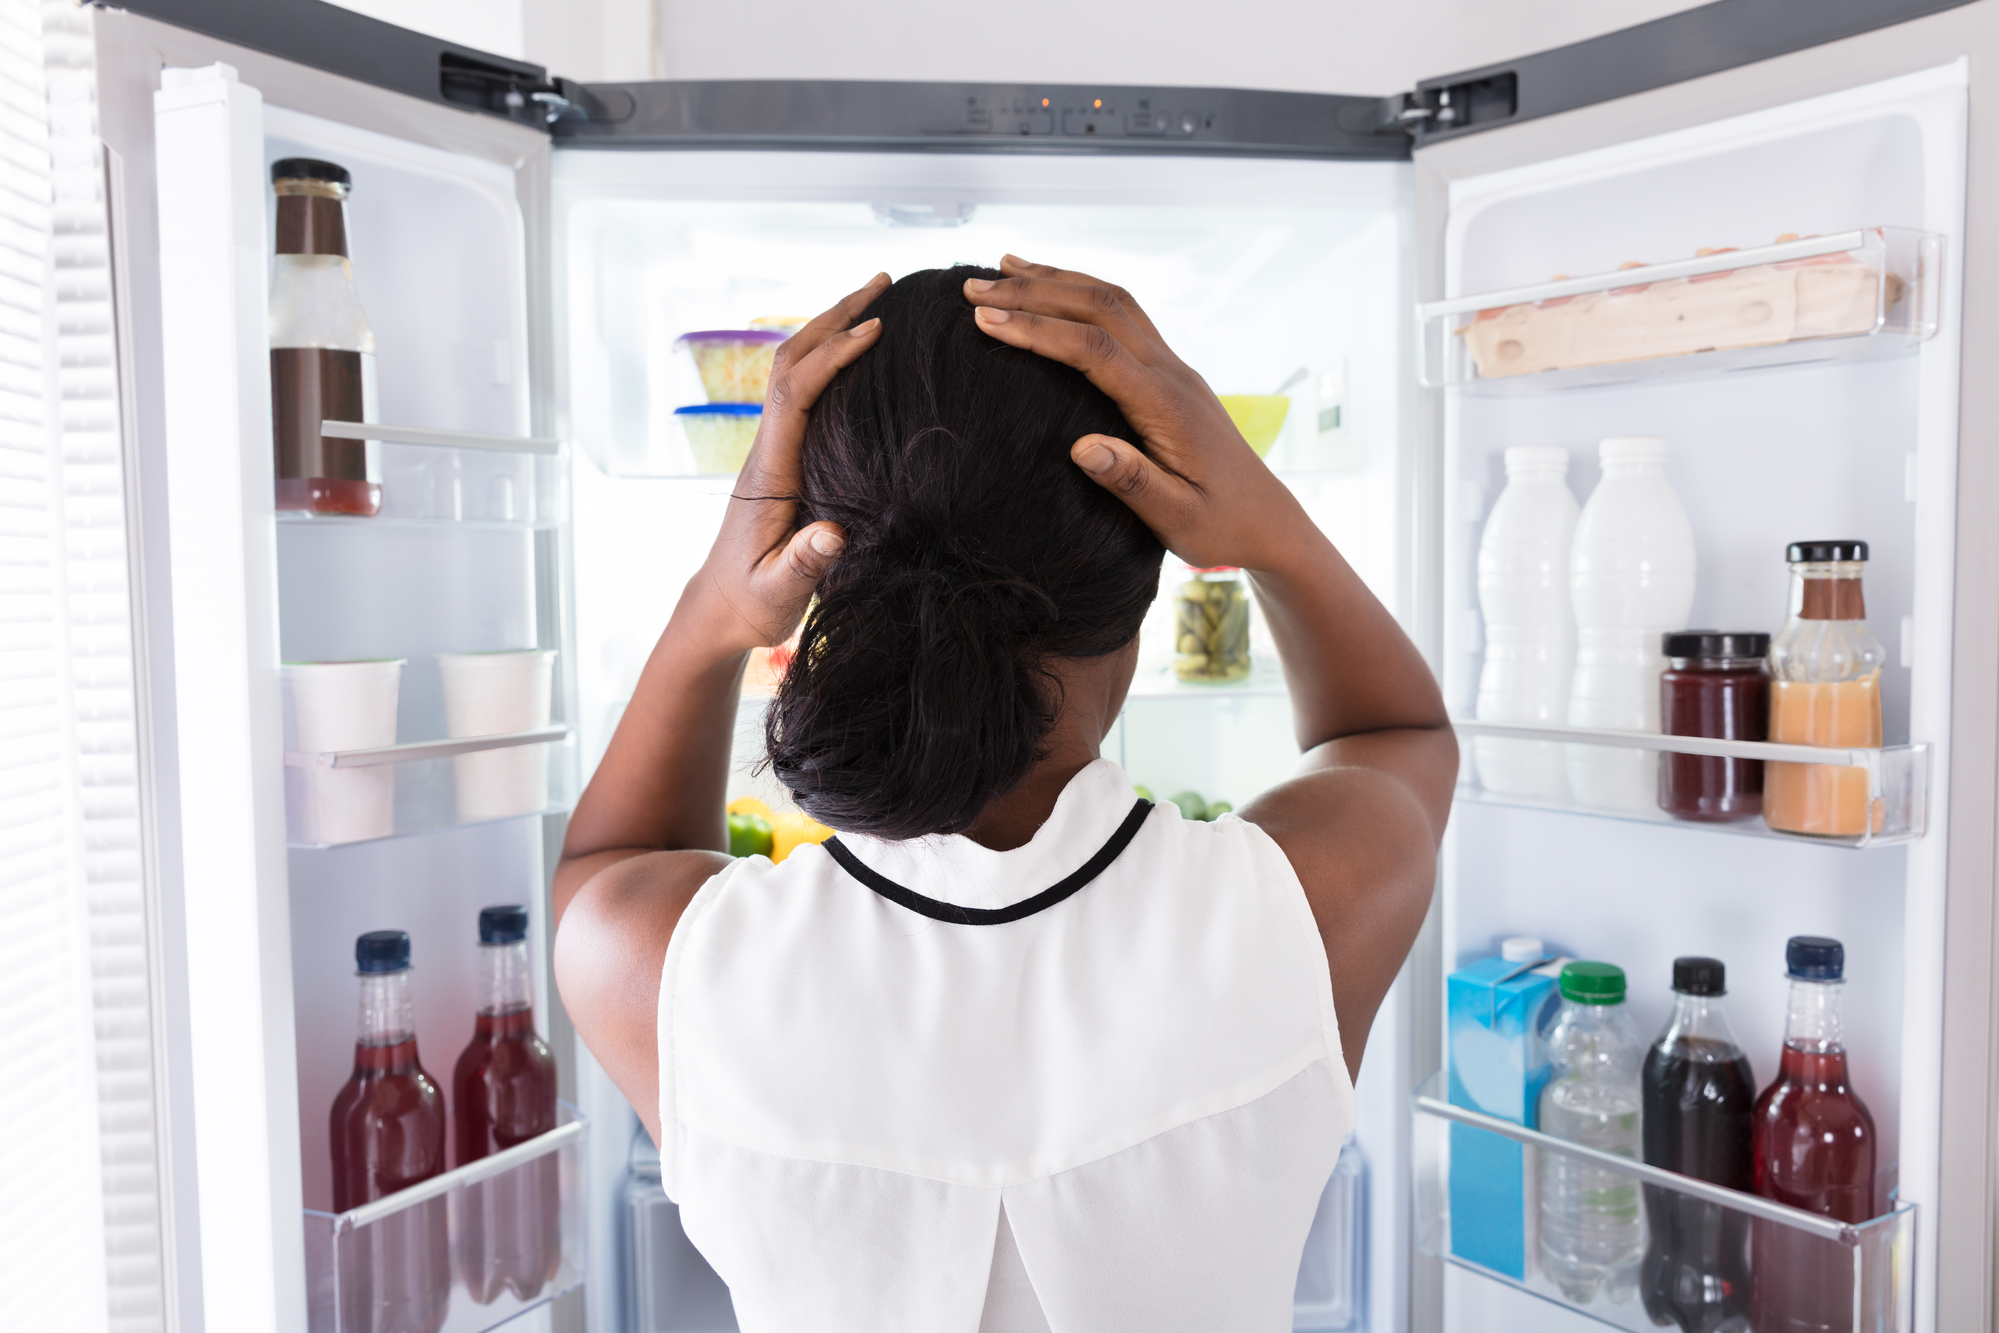 Rear view of a young Black woman looking in the open refrigerator confused about food rules